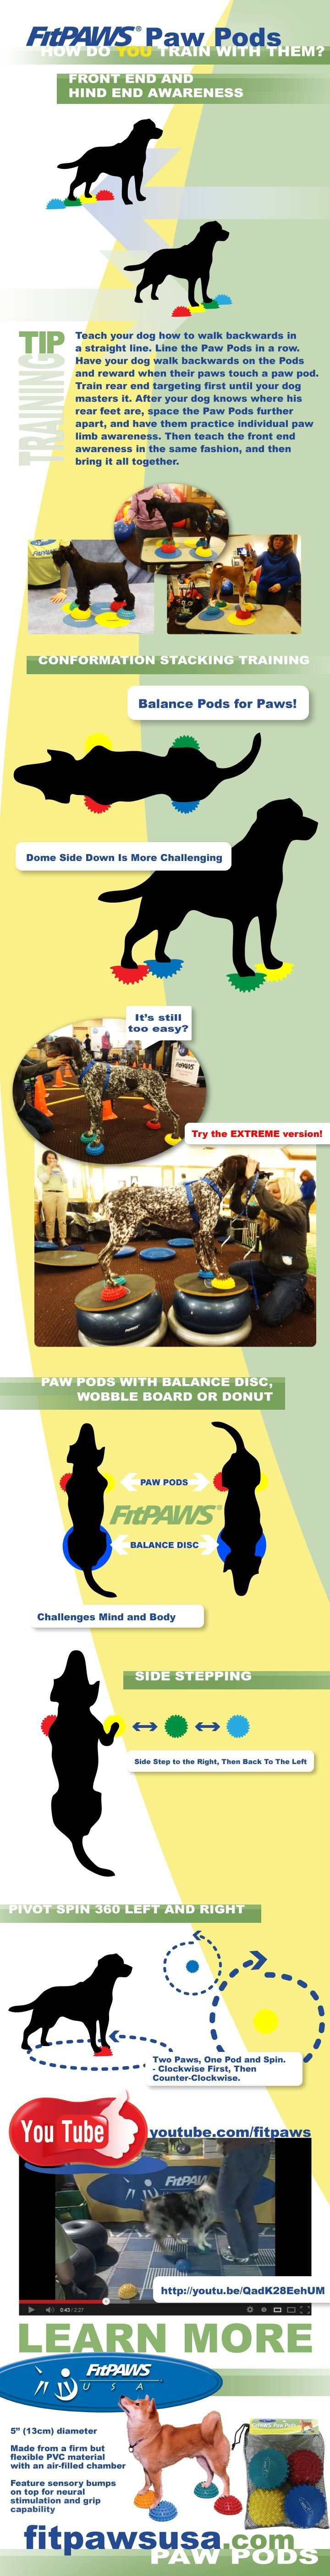 5 Balance Stone Challenges on FitPAWS® Paw Pods - FitPAWS® Canine Conditioning Equipment